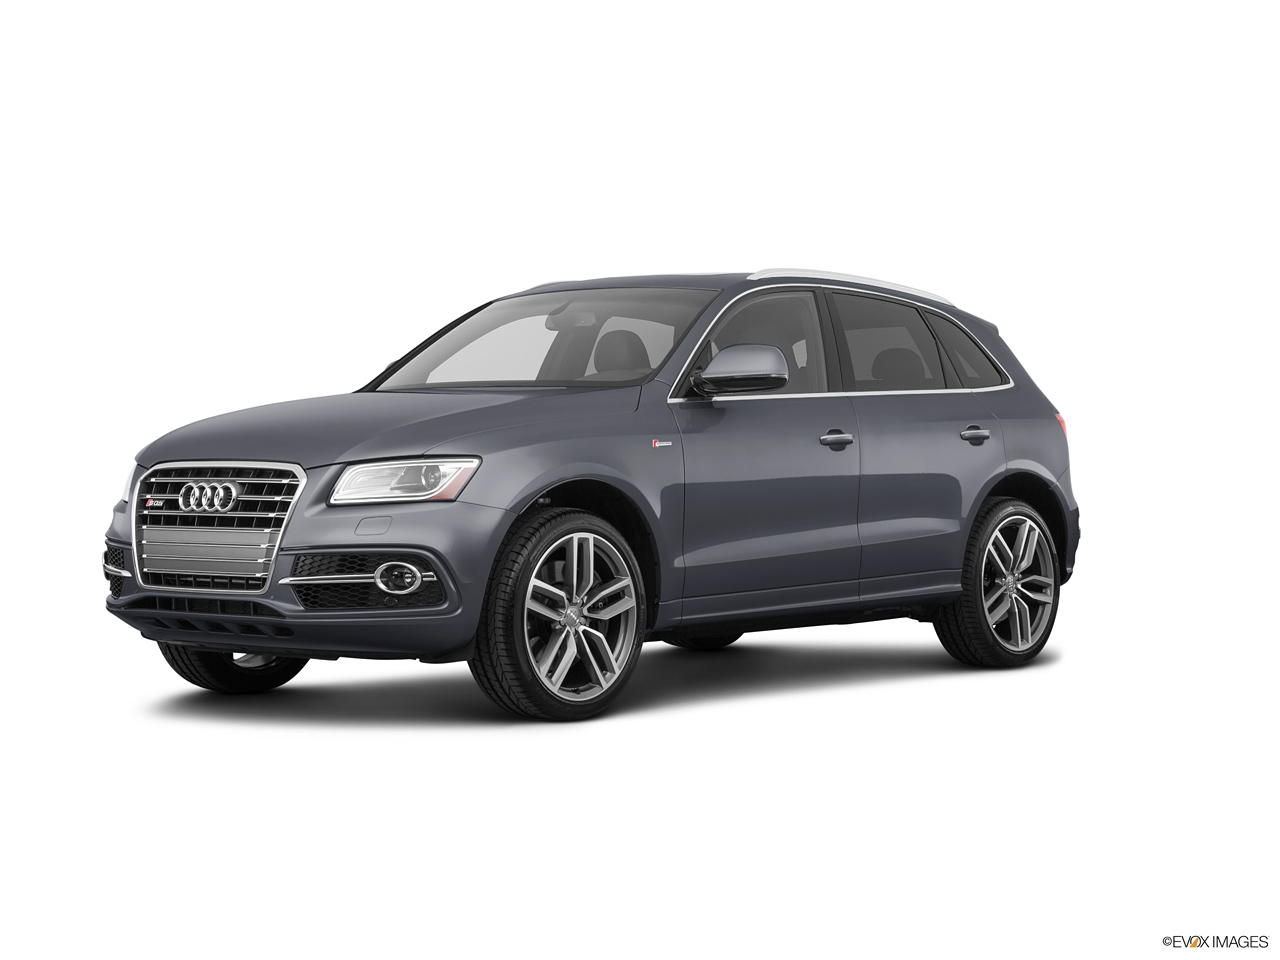 audi q5 2017 45 tfsi quattro 272 hp in uae new car prices specs reviews photos yallamotor. Black Bedroom Furniture Sets. Home Design Ideas